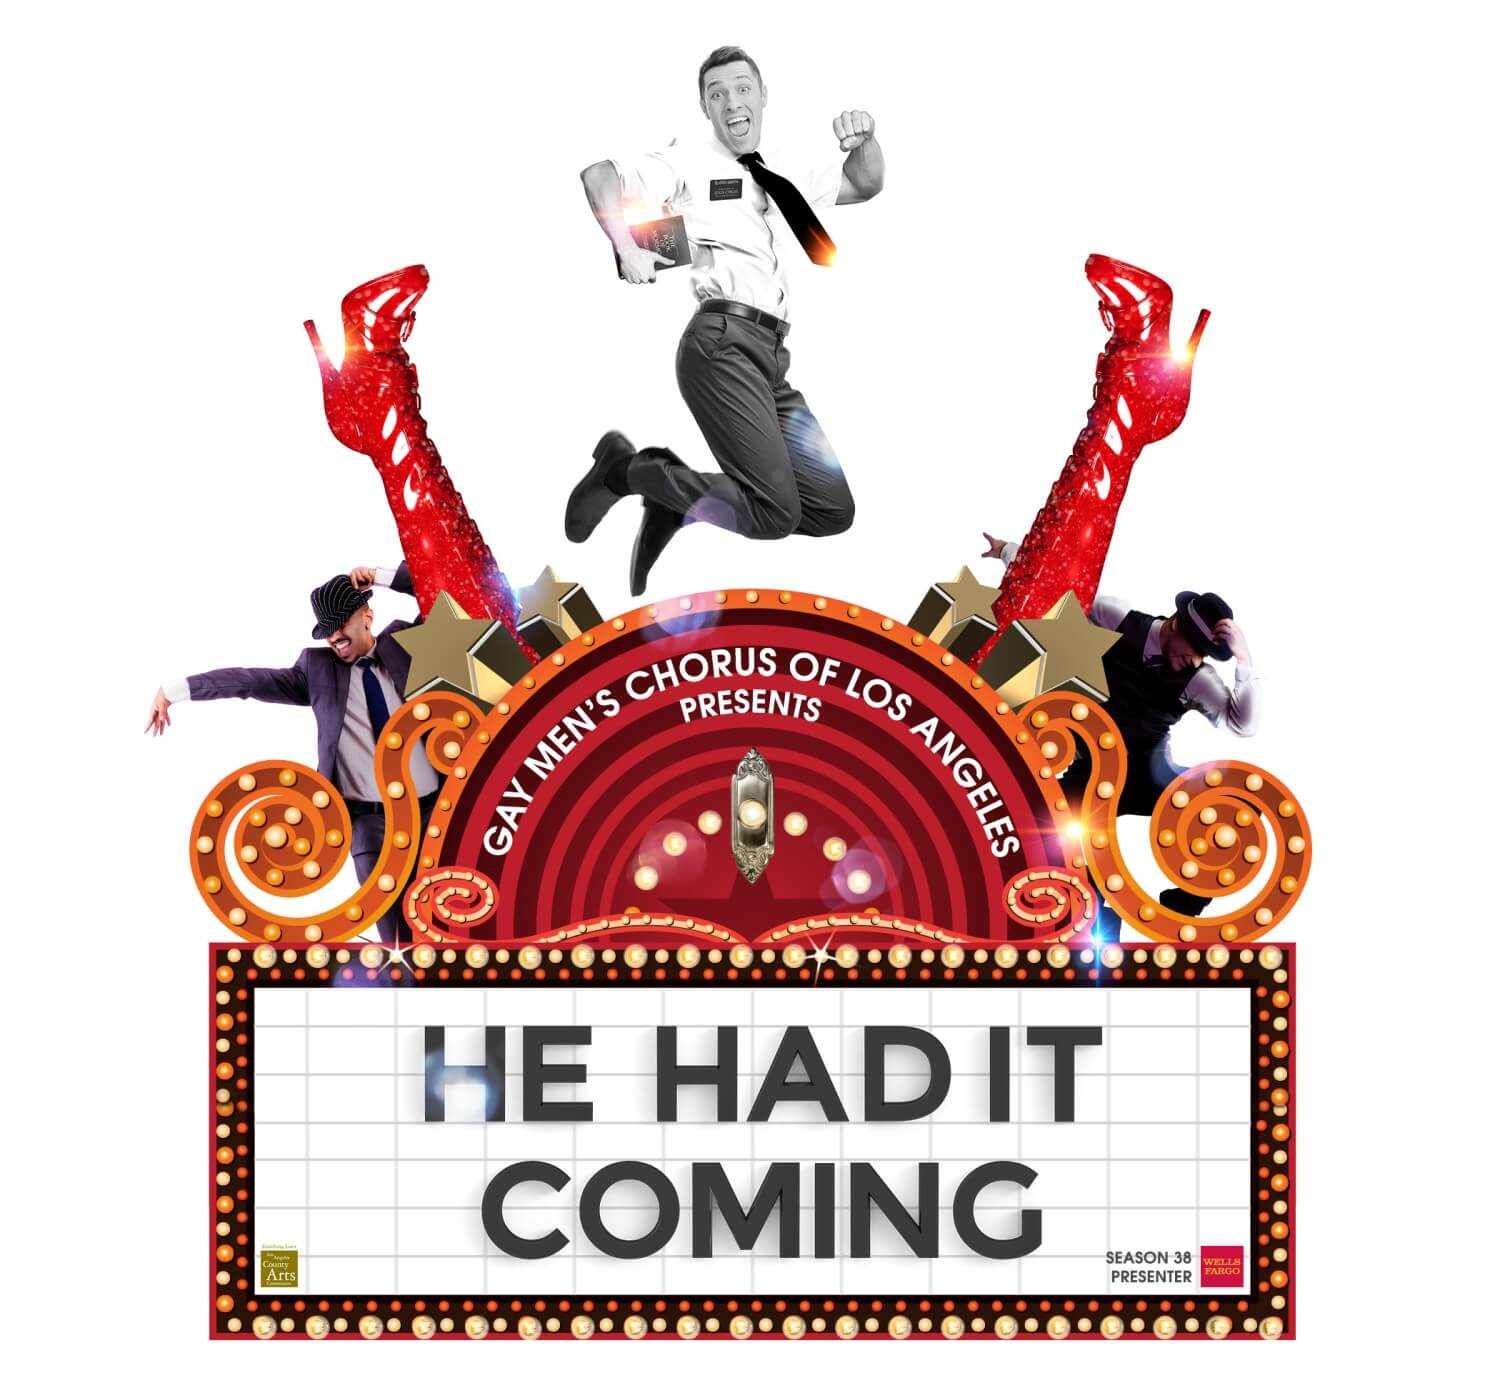 HE-HAD-IT-COMING-LOGO-BOARD-v1